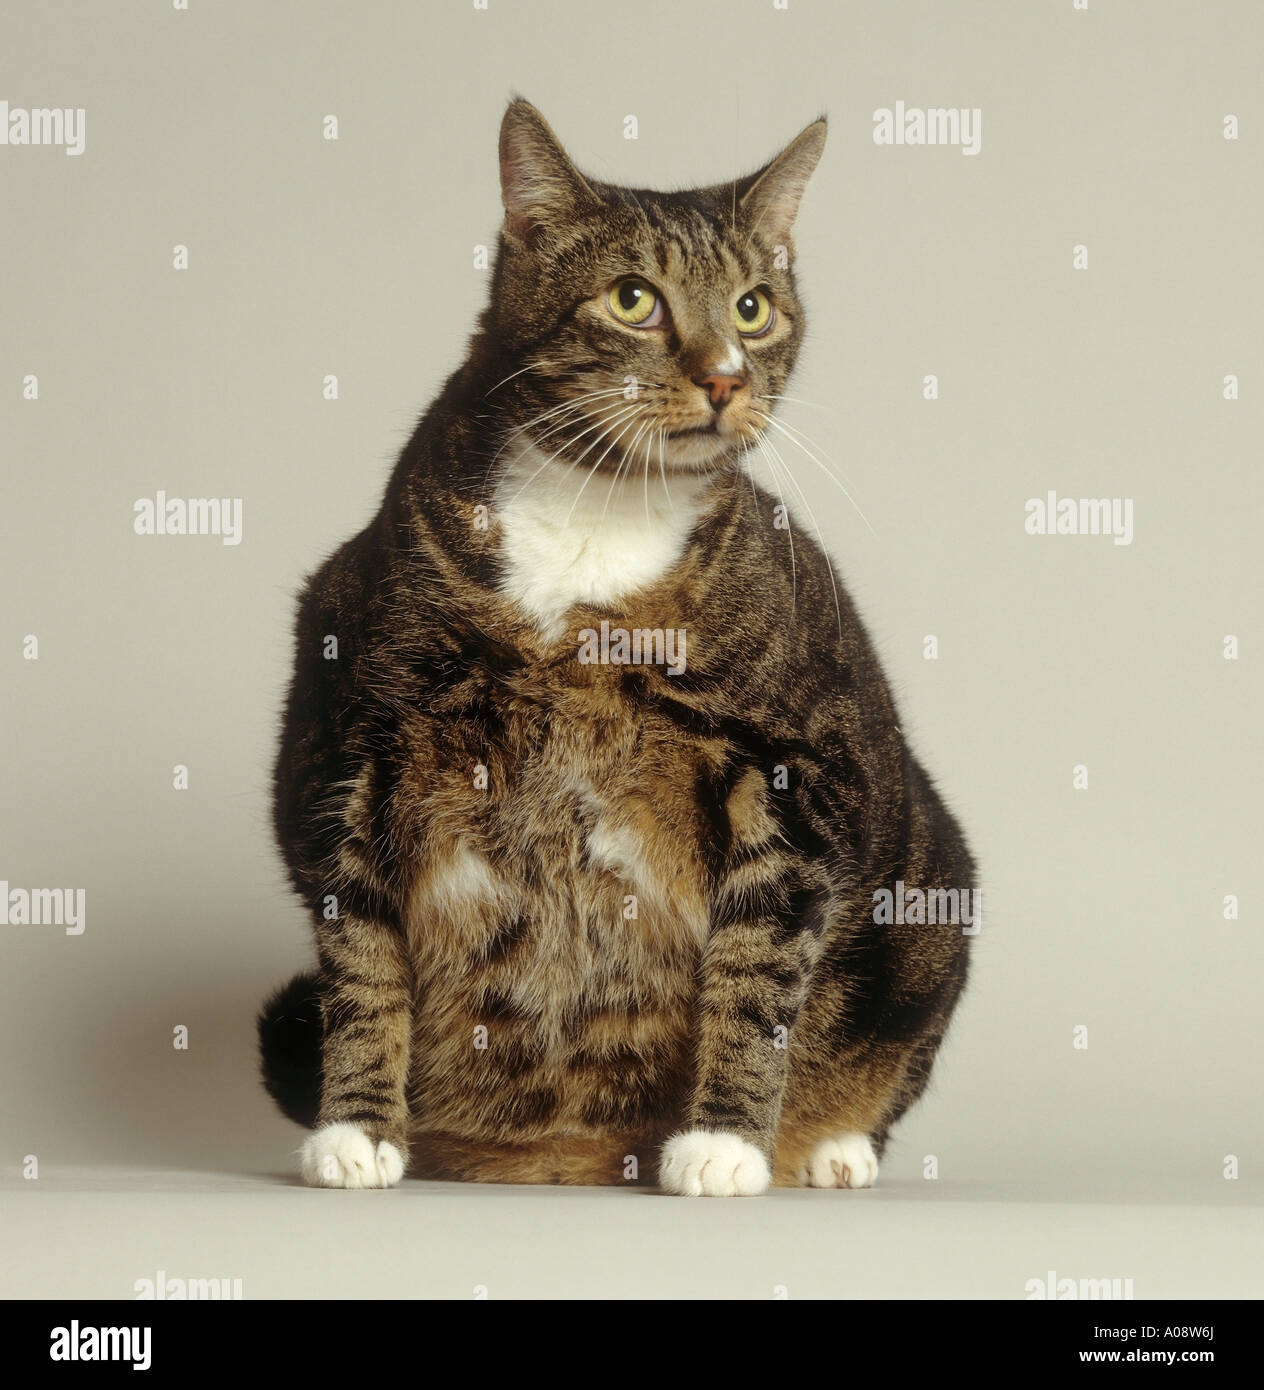 Very Fat Cat Pets Stock Photos & Very Fat Cat Pets Stock Images ...